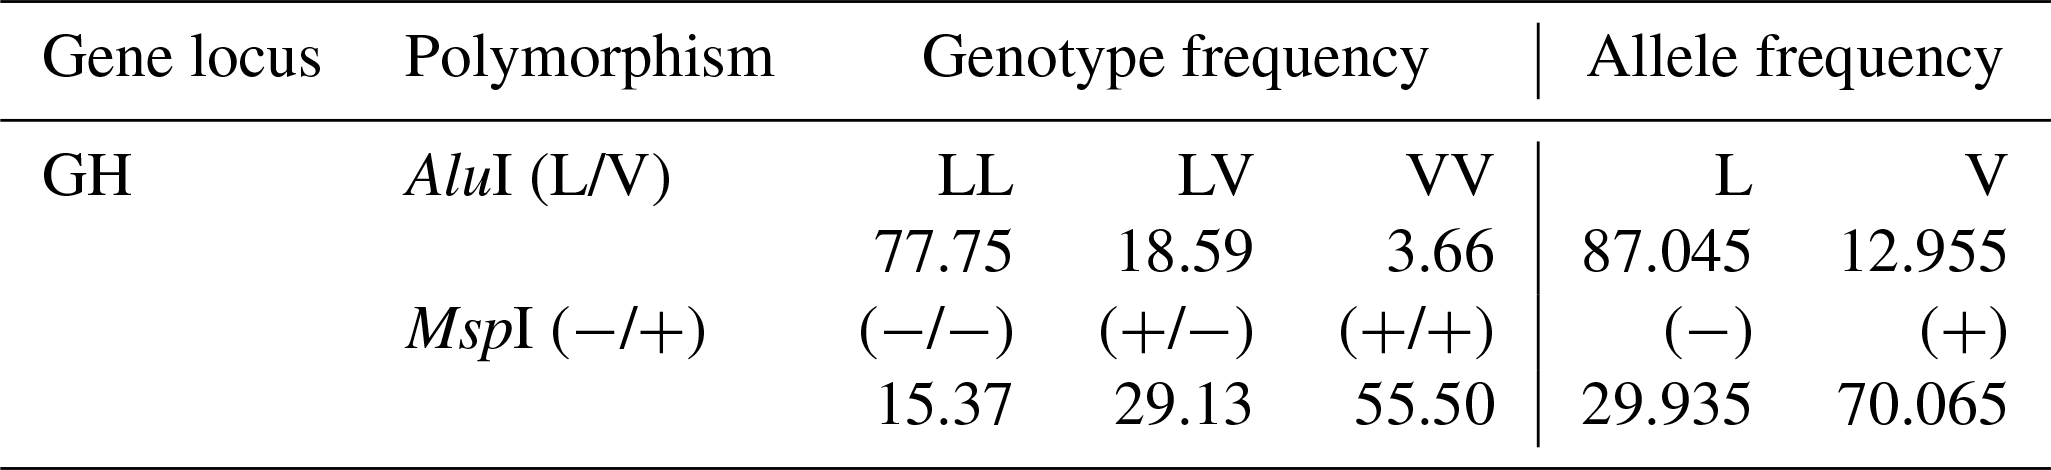 AAB - Assessment of growth hormone gene polymorphism effects on